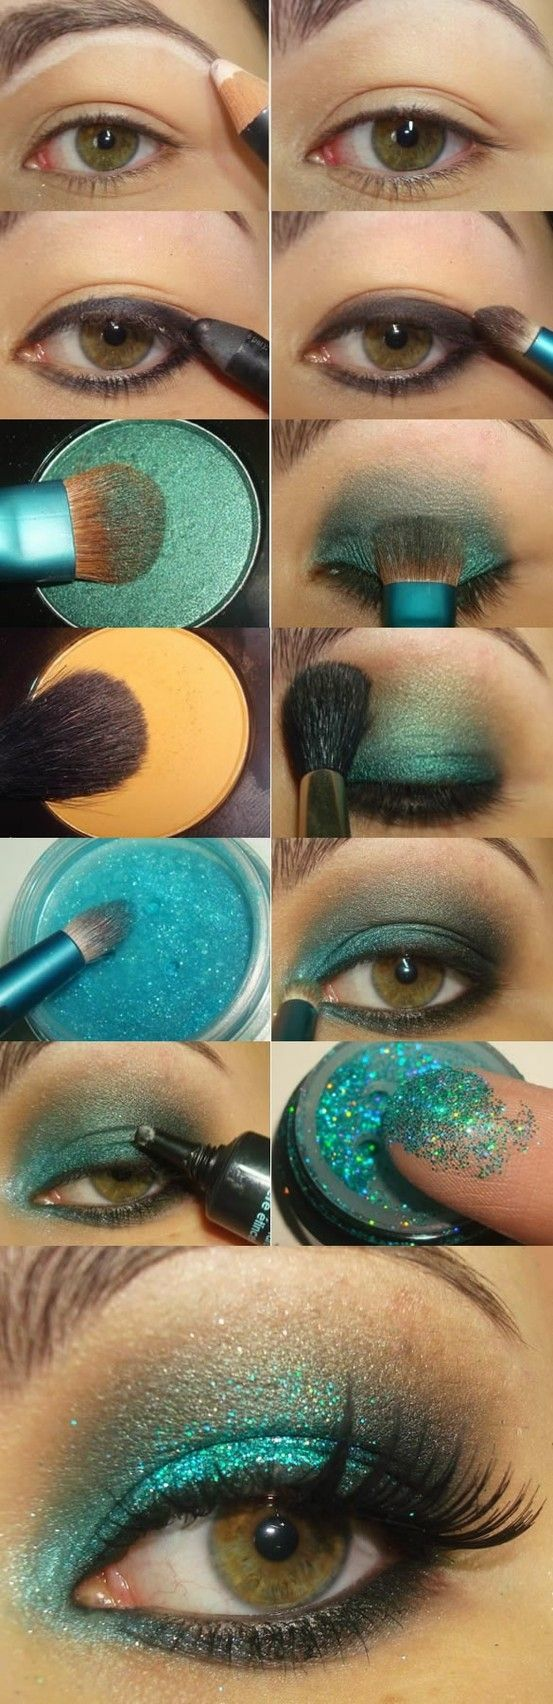 Mejor-Eye-maquillaje-tutoriales femmania